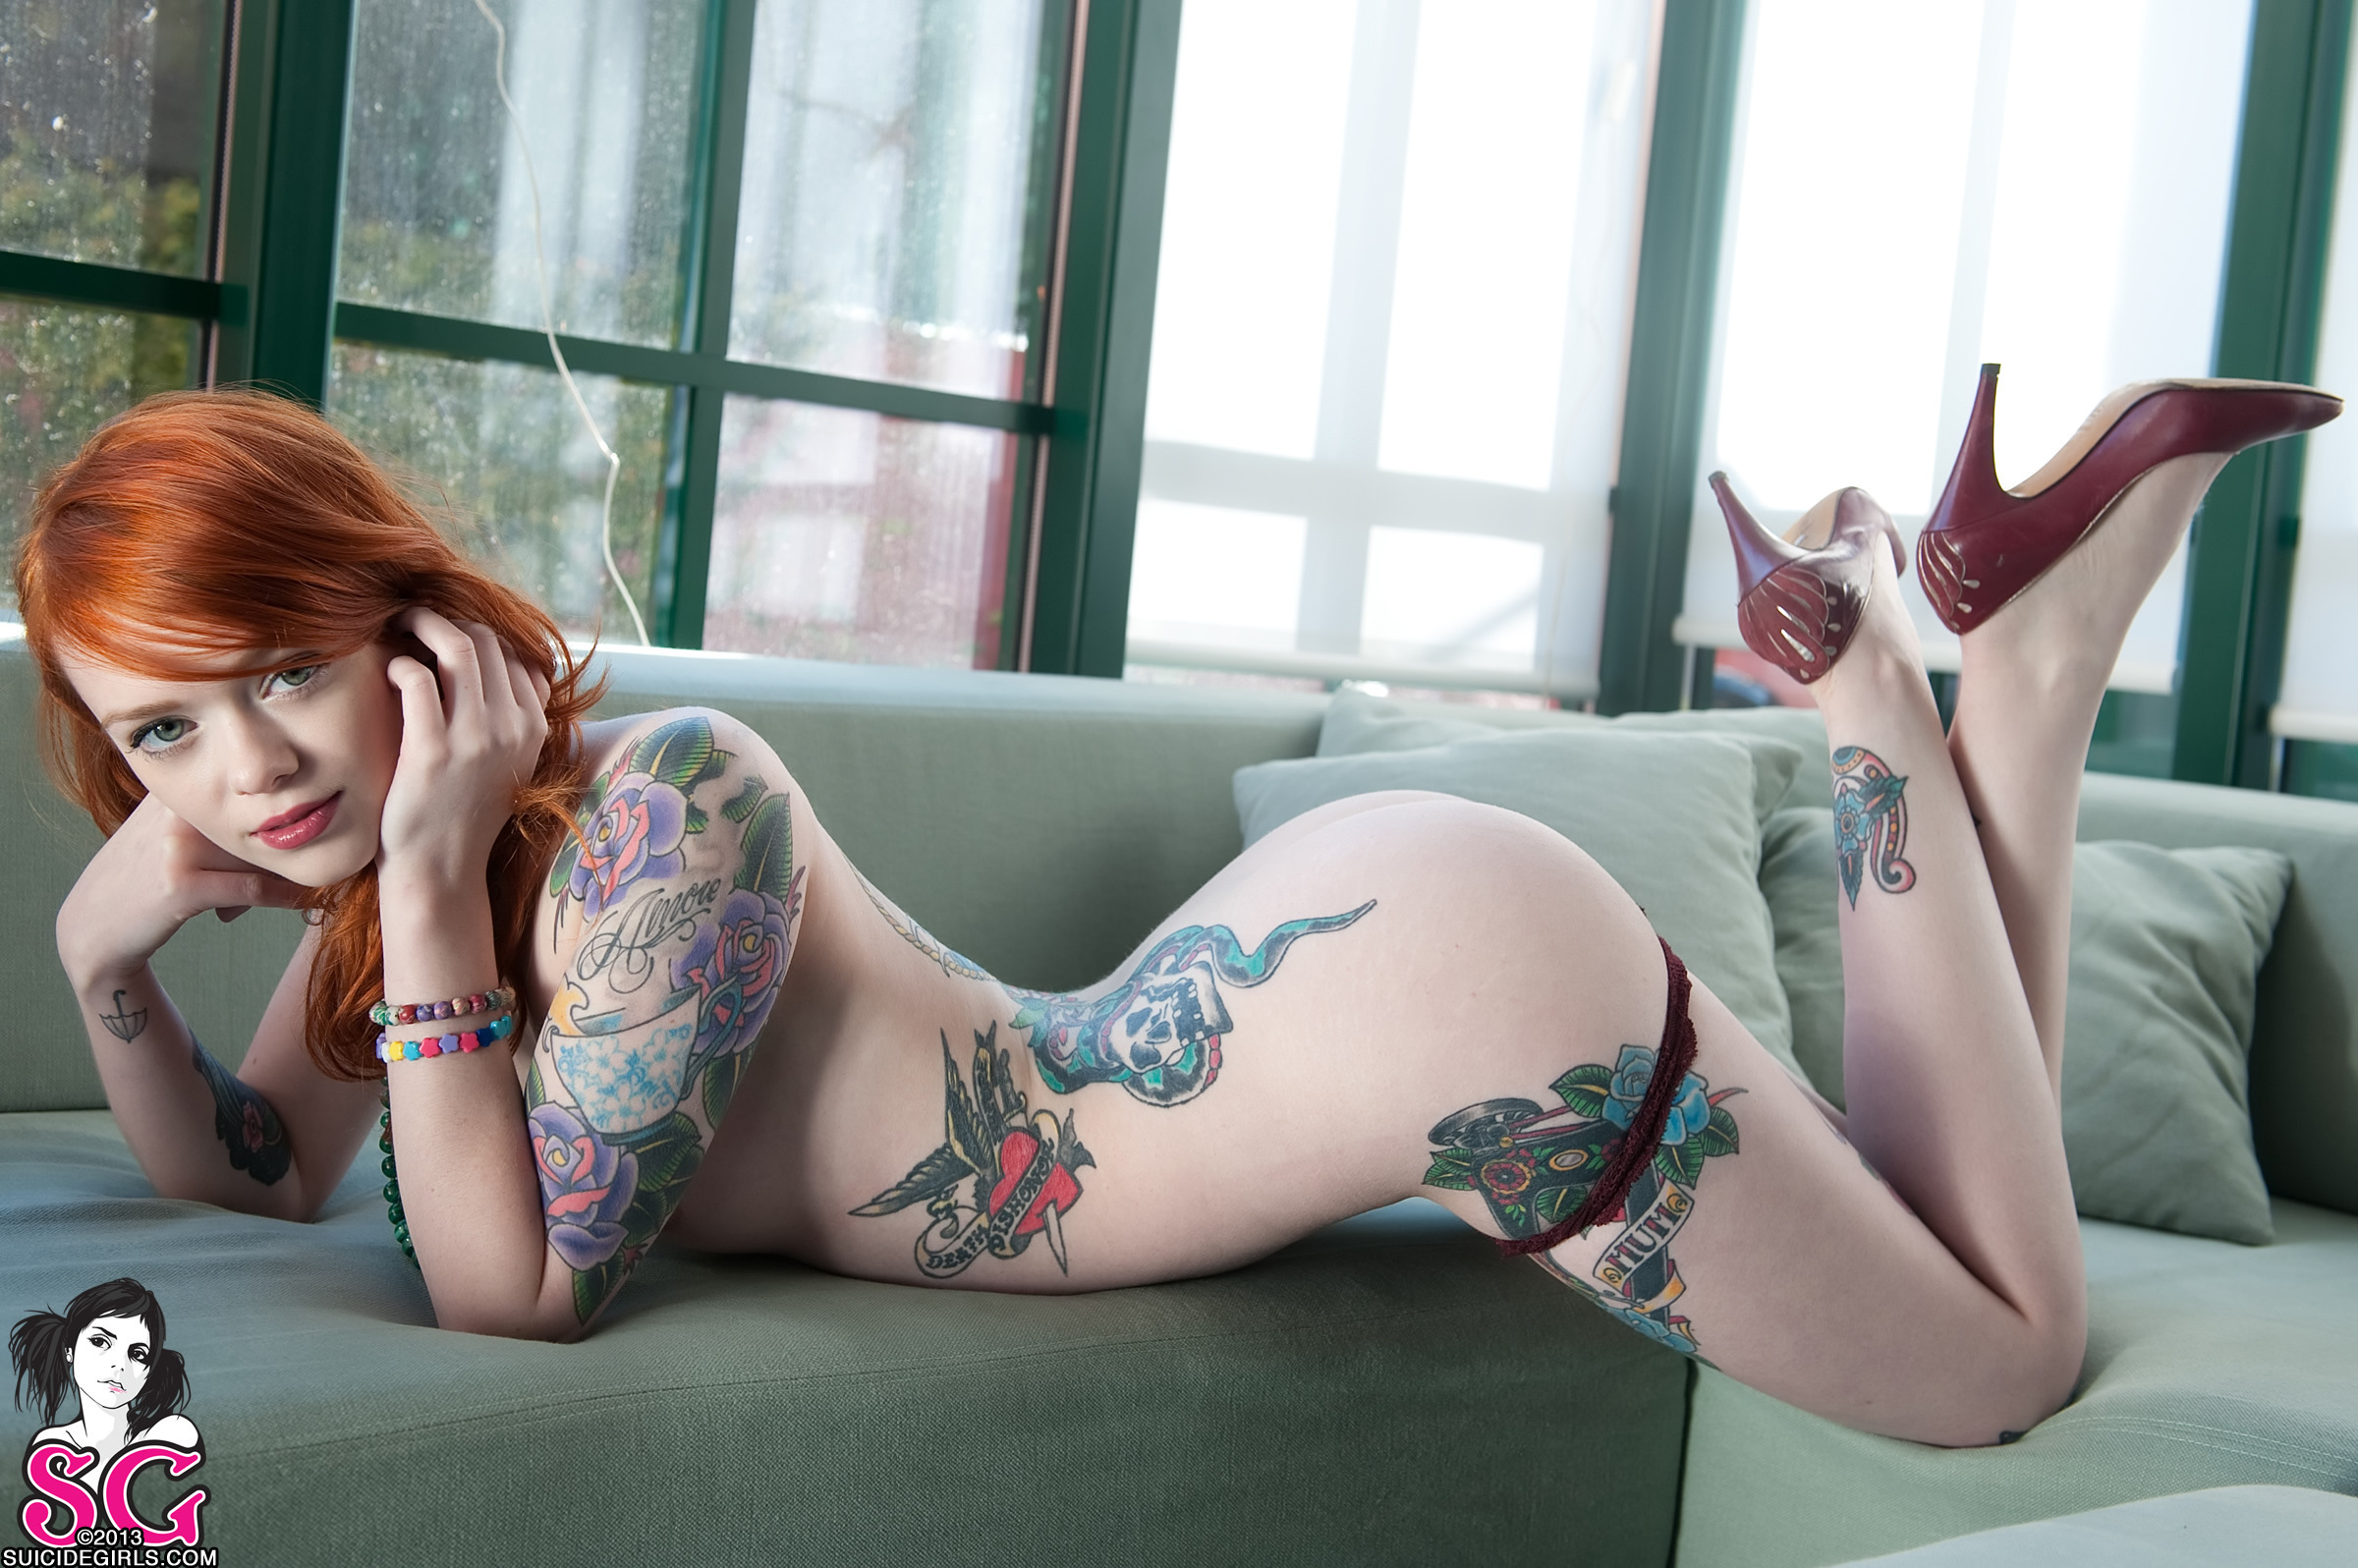 Remarkable, very Julie kennedy suicide girls nude agree